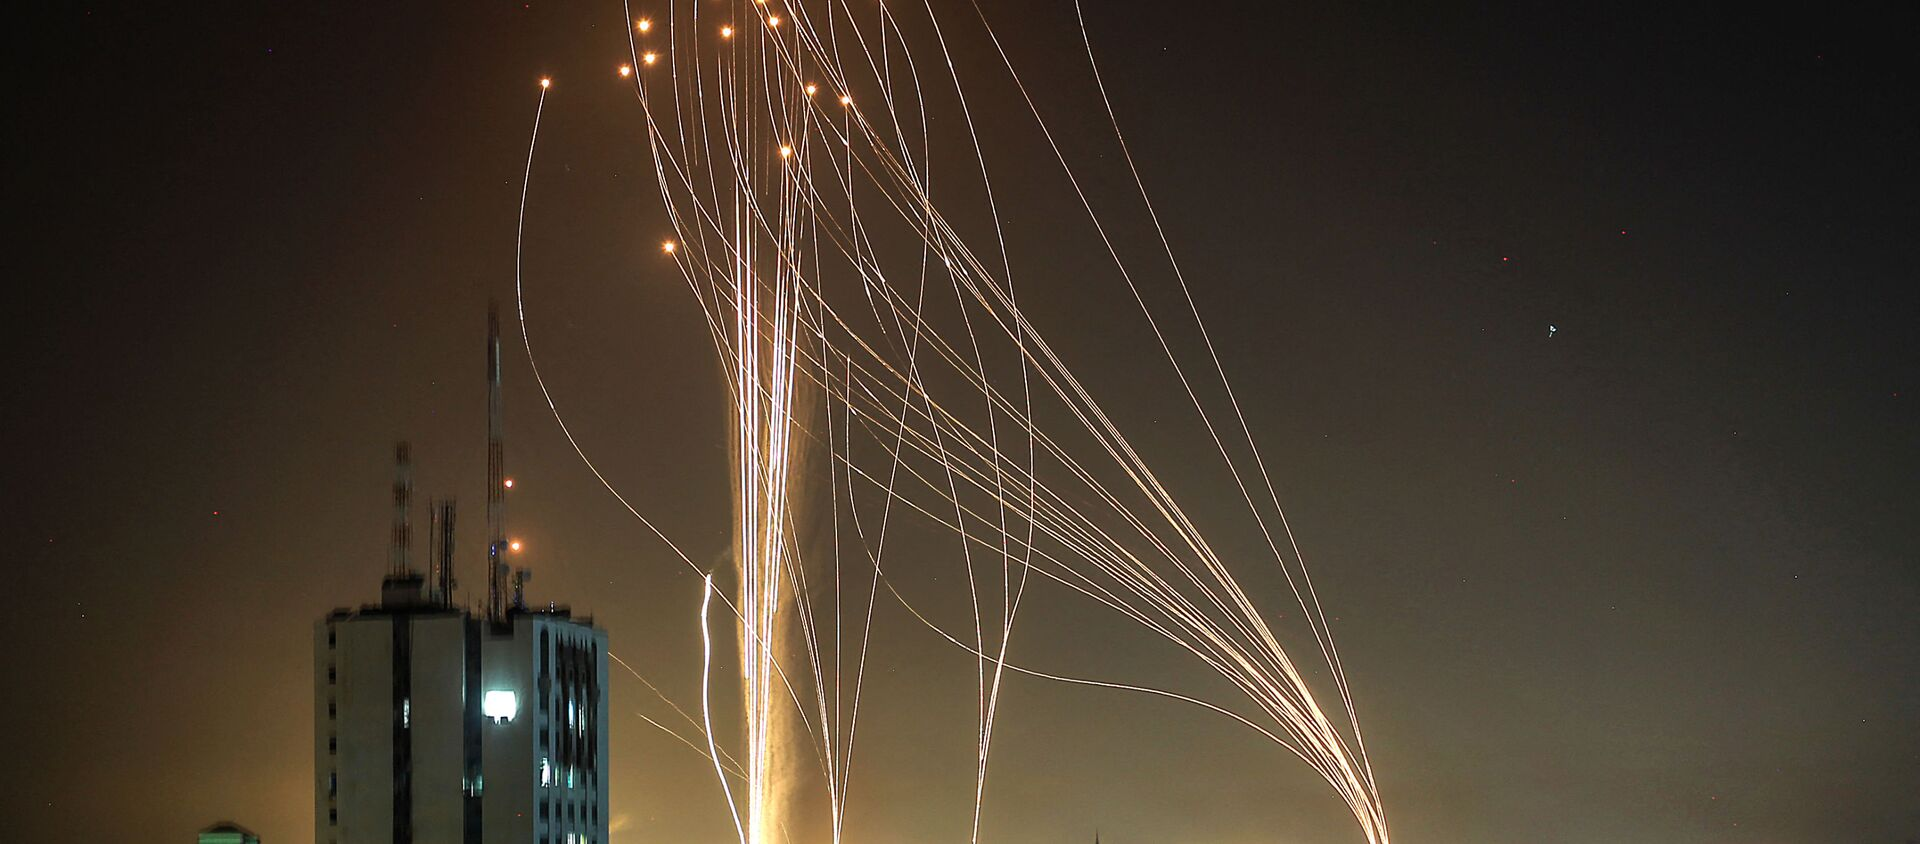 Rockets are launched from Gaza city, controlled by the Palestinian Hamas movement, in response to an Israeli air strike on a 12-storey building in the city, towards the coastal city of Tel Aviv, on 11 May 2021. - Sputnik International, 1920, 18.05.2021